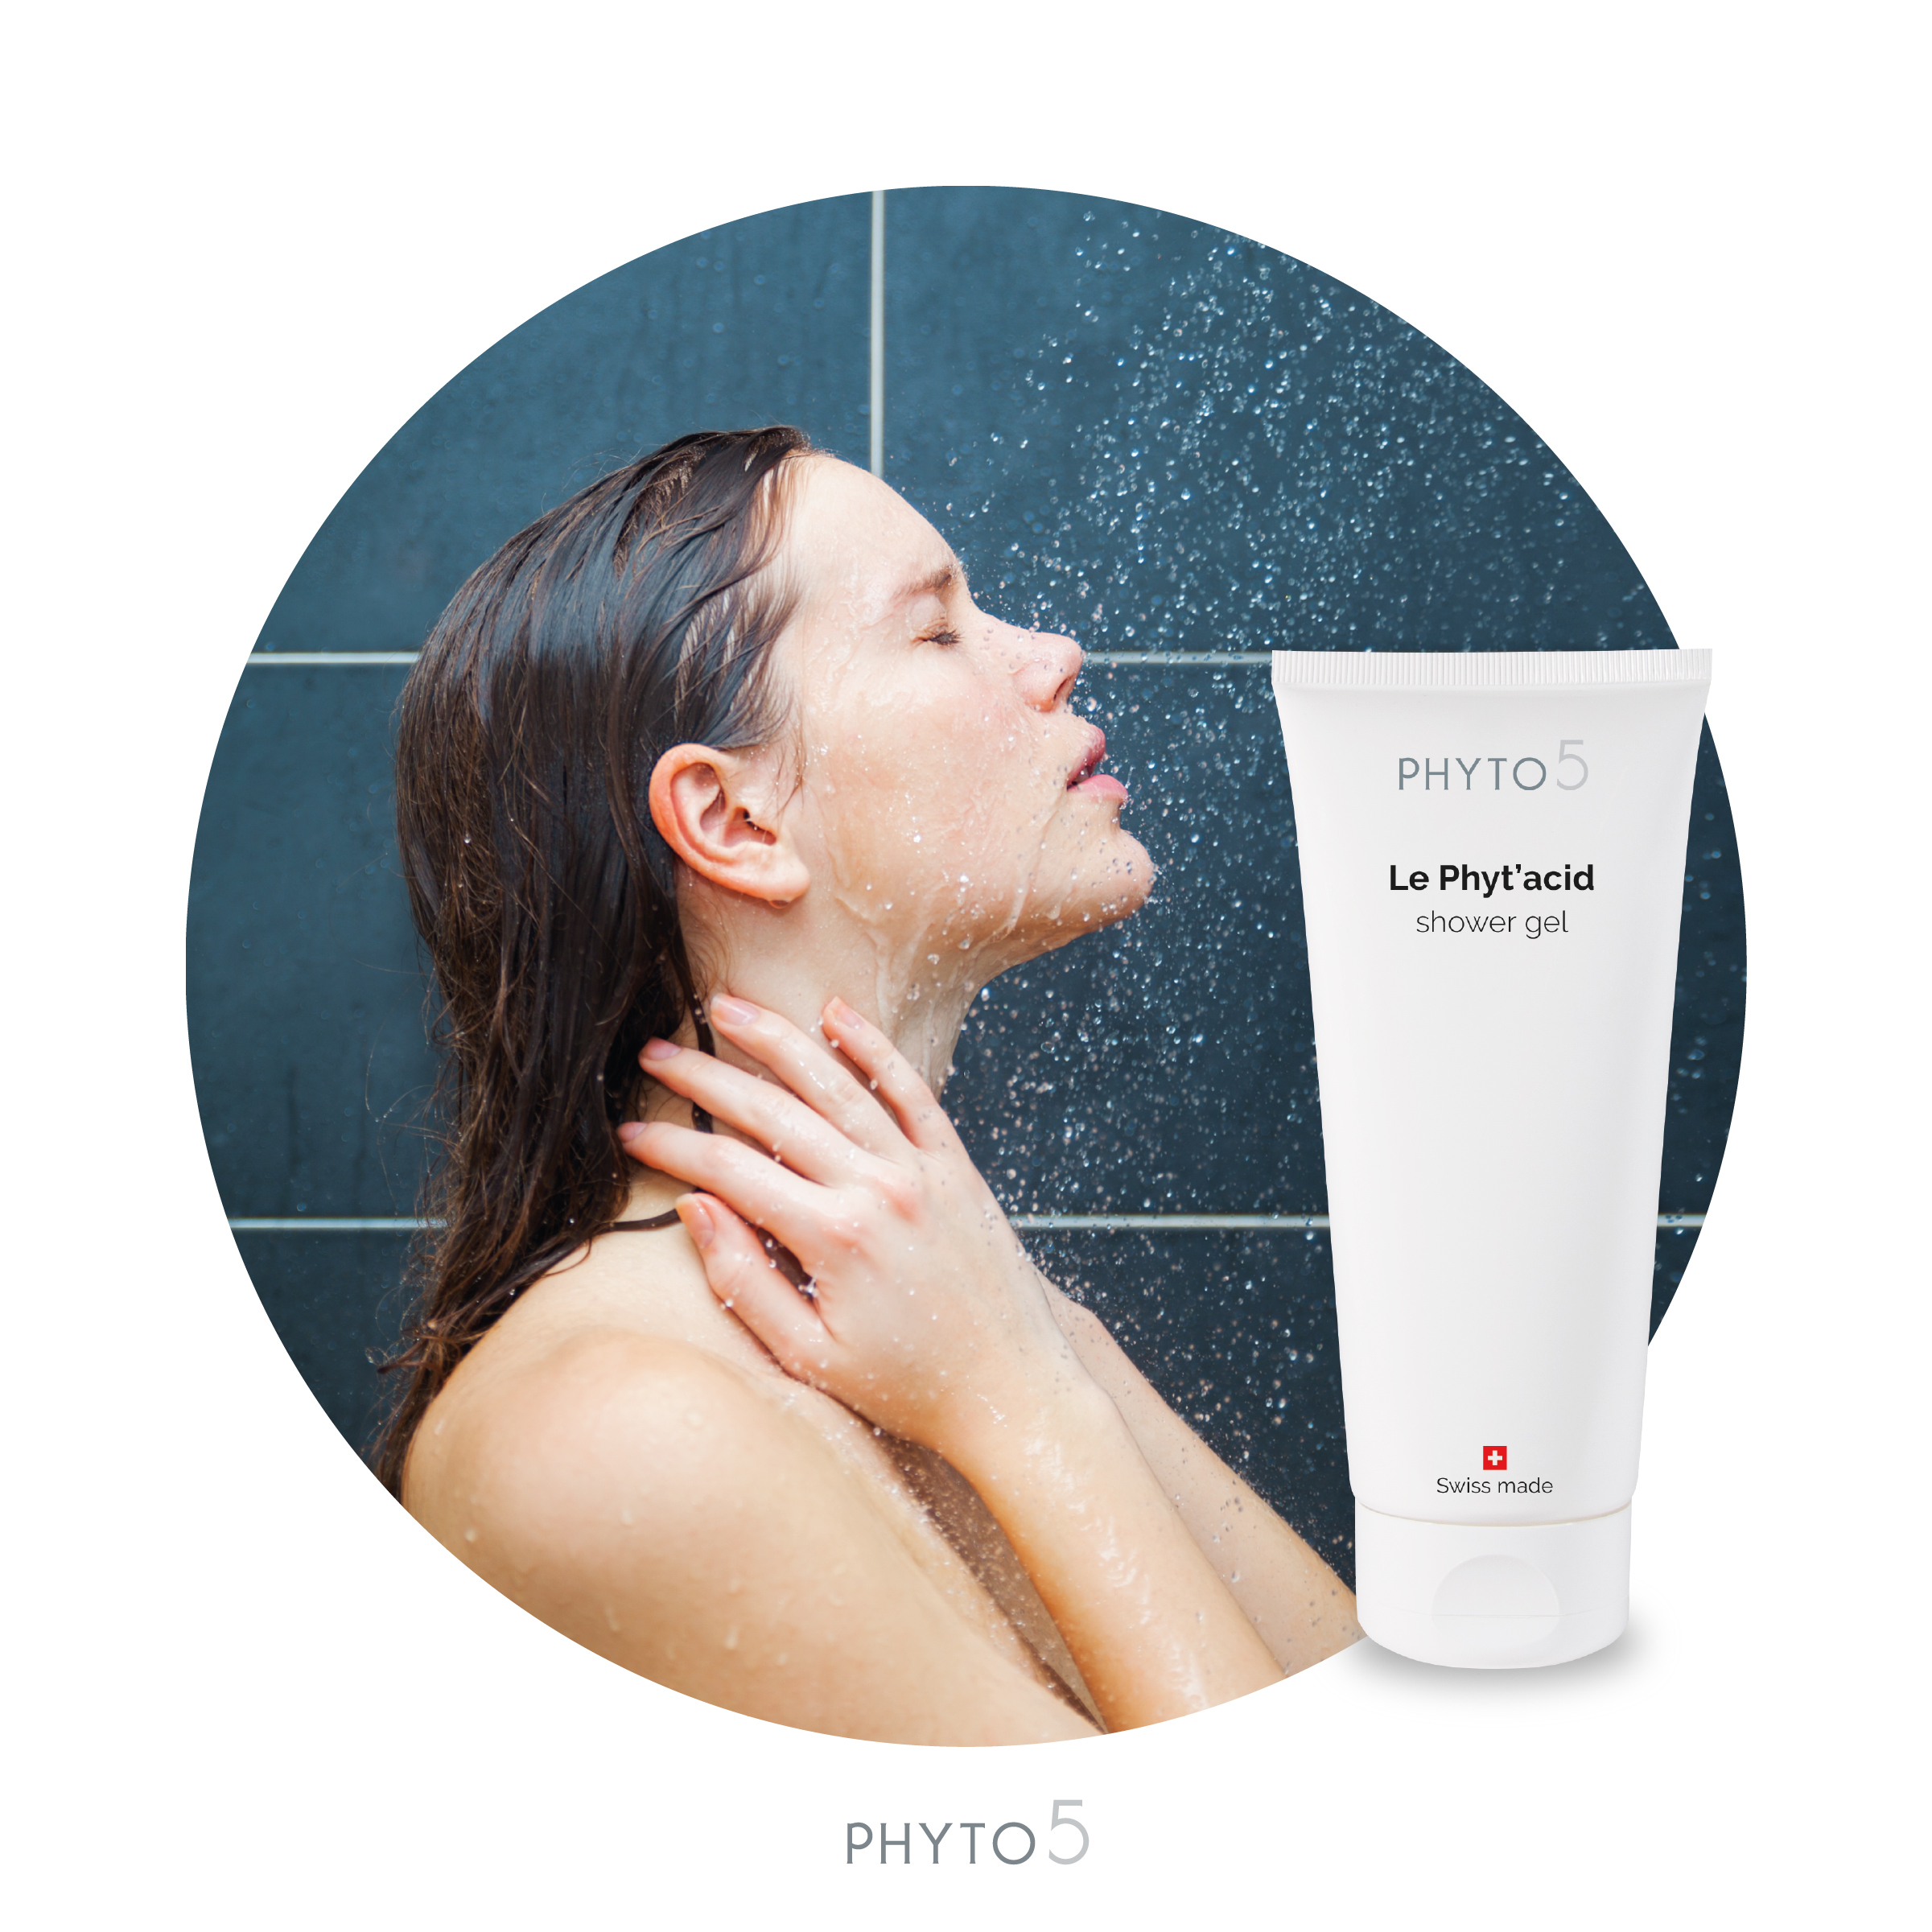 Phyt'Acid face and body cleansing gel